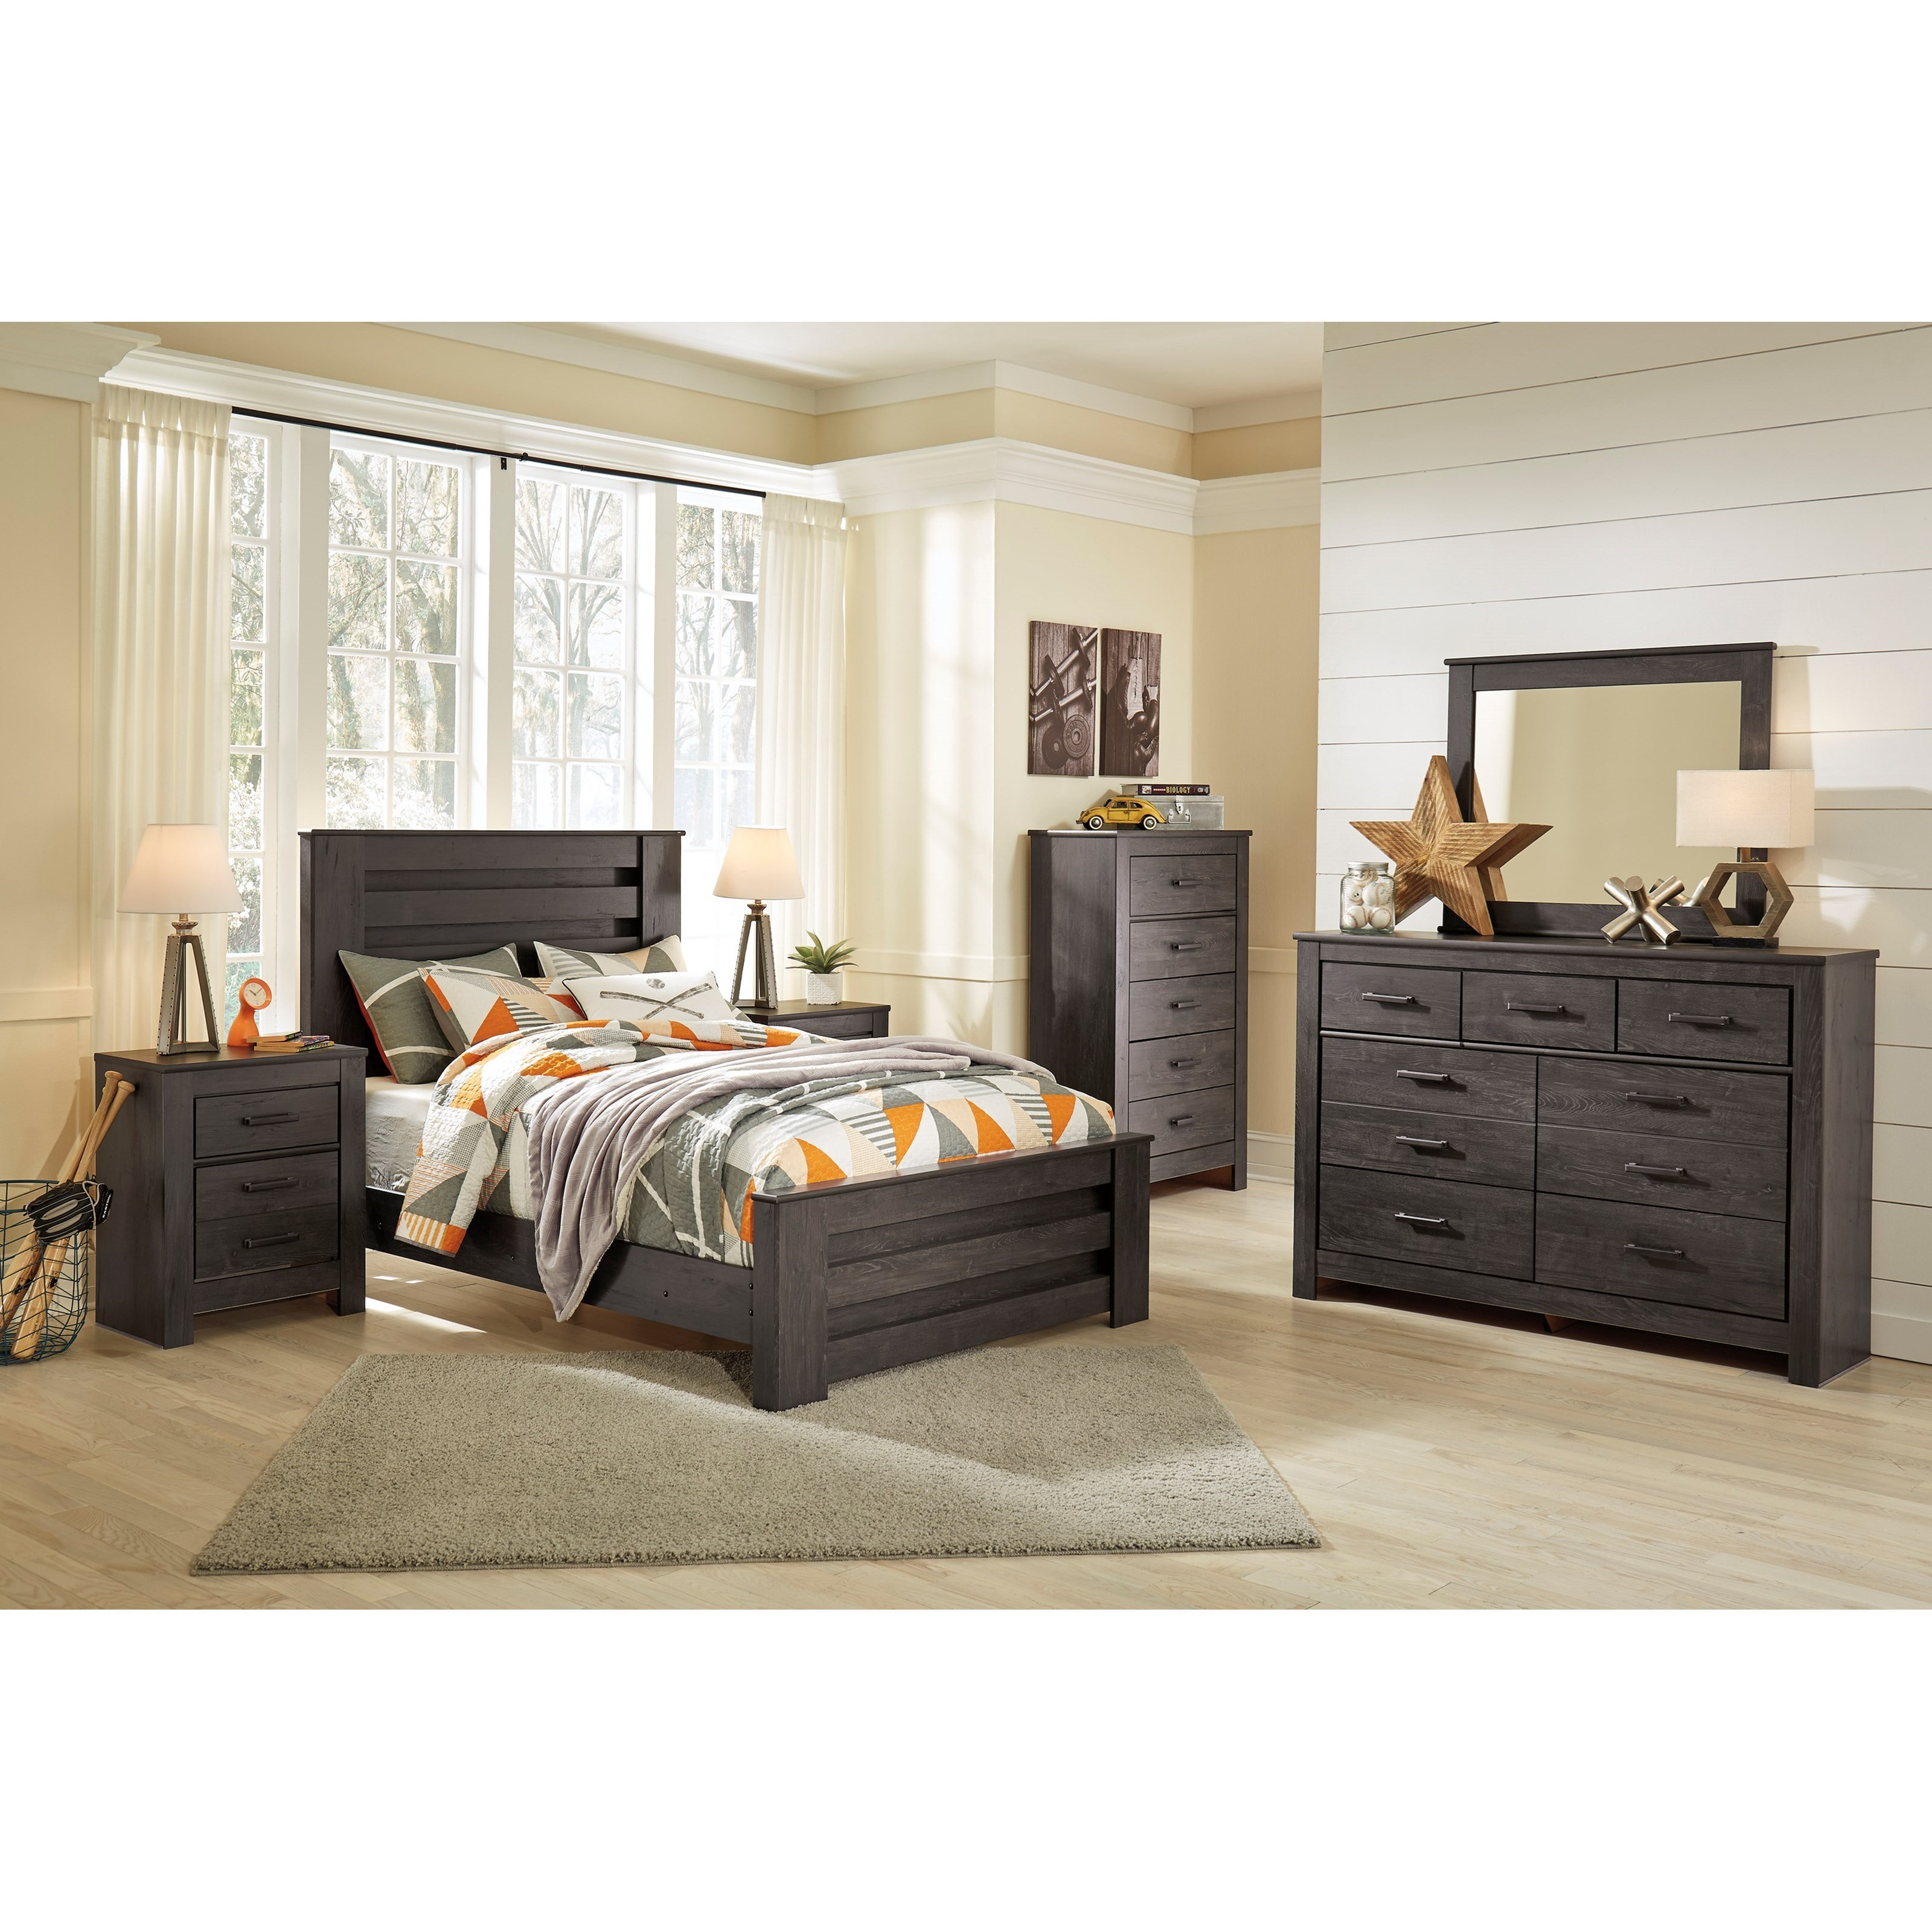 Brinxton Full Bedroom Group by Signature Design by Ashley at Value City Furniture